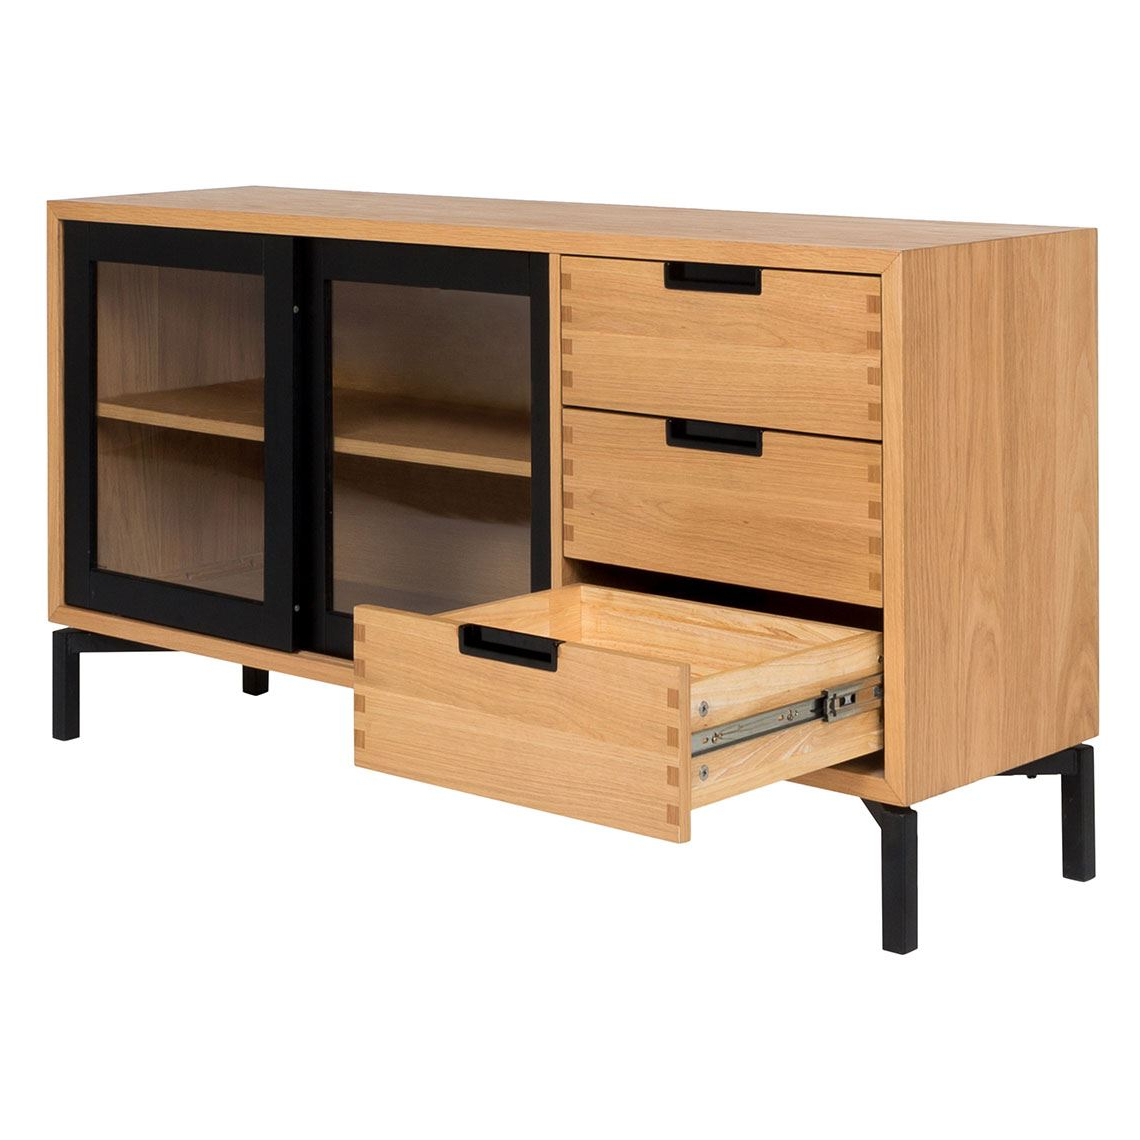 Atelier 2 Door 3 Drawer Buffet, Black & Oak Intended For 3 Drawer Storage Buffets (View 13 of 20)